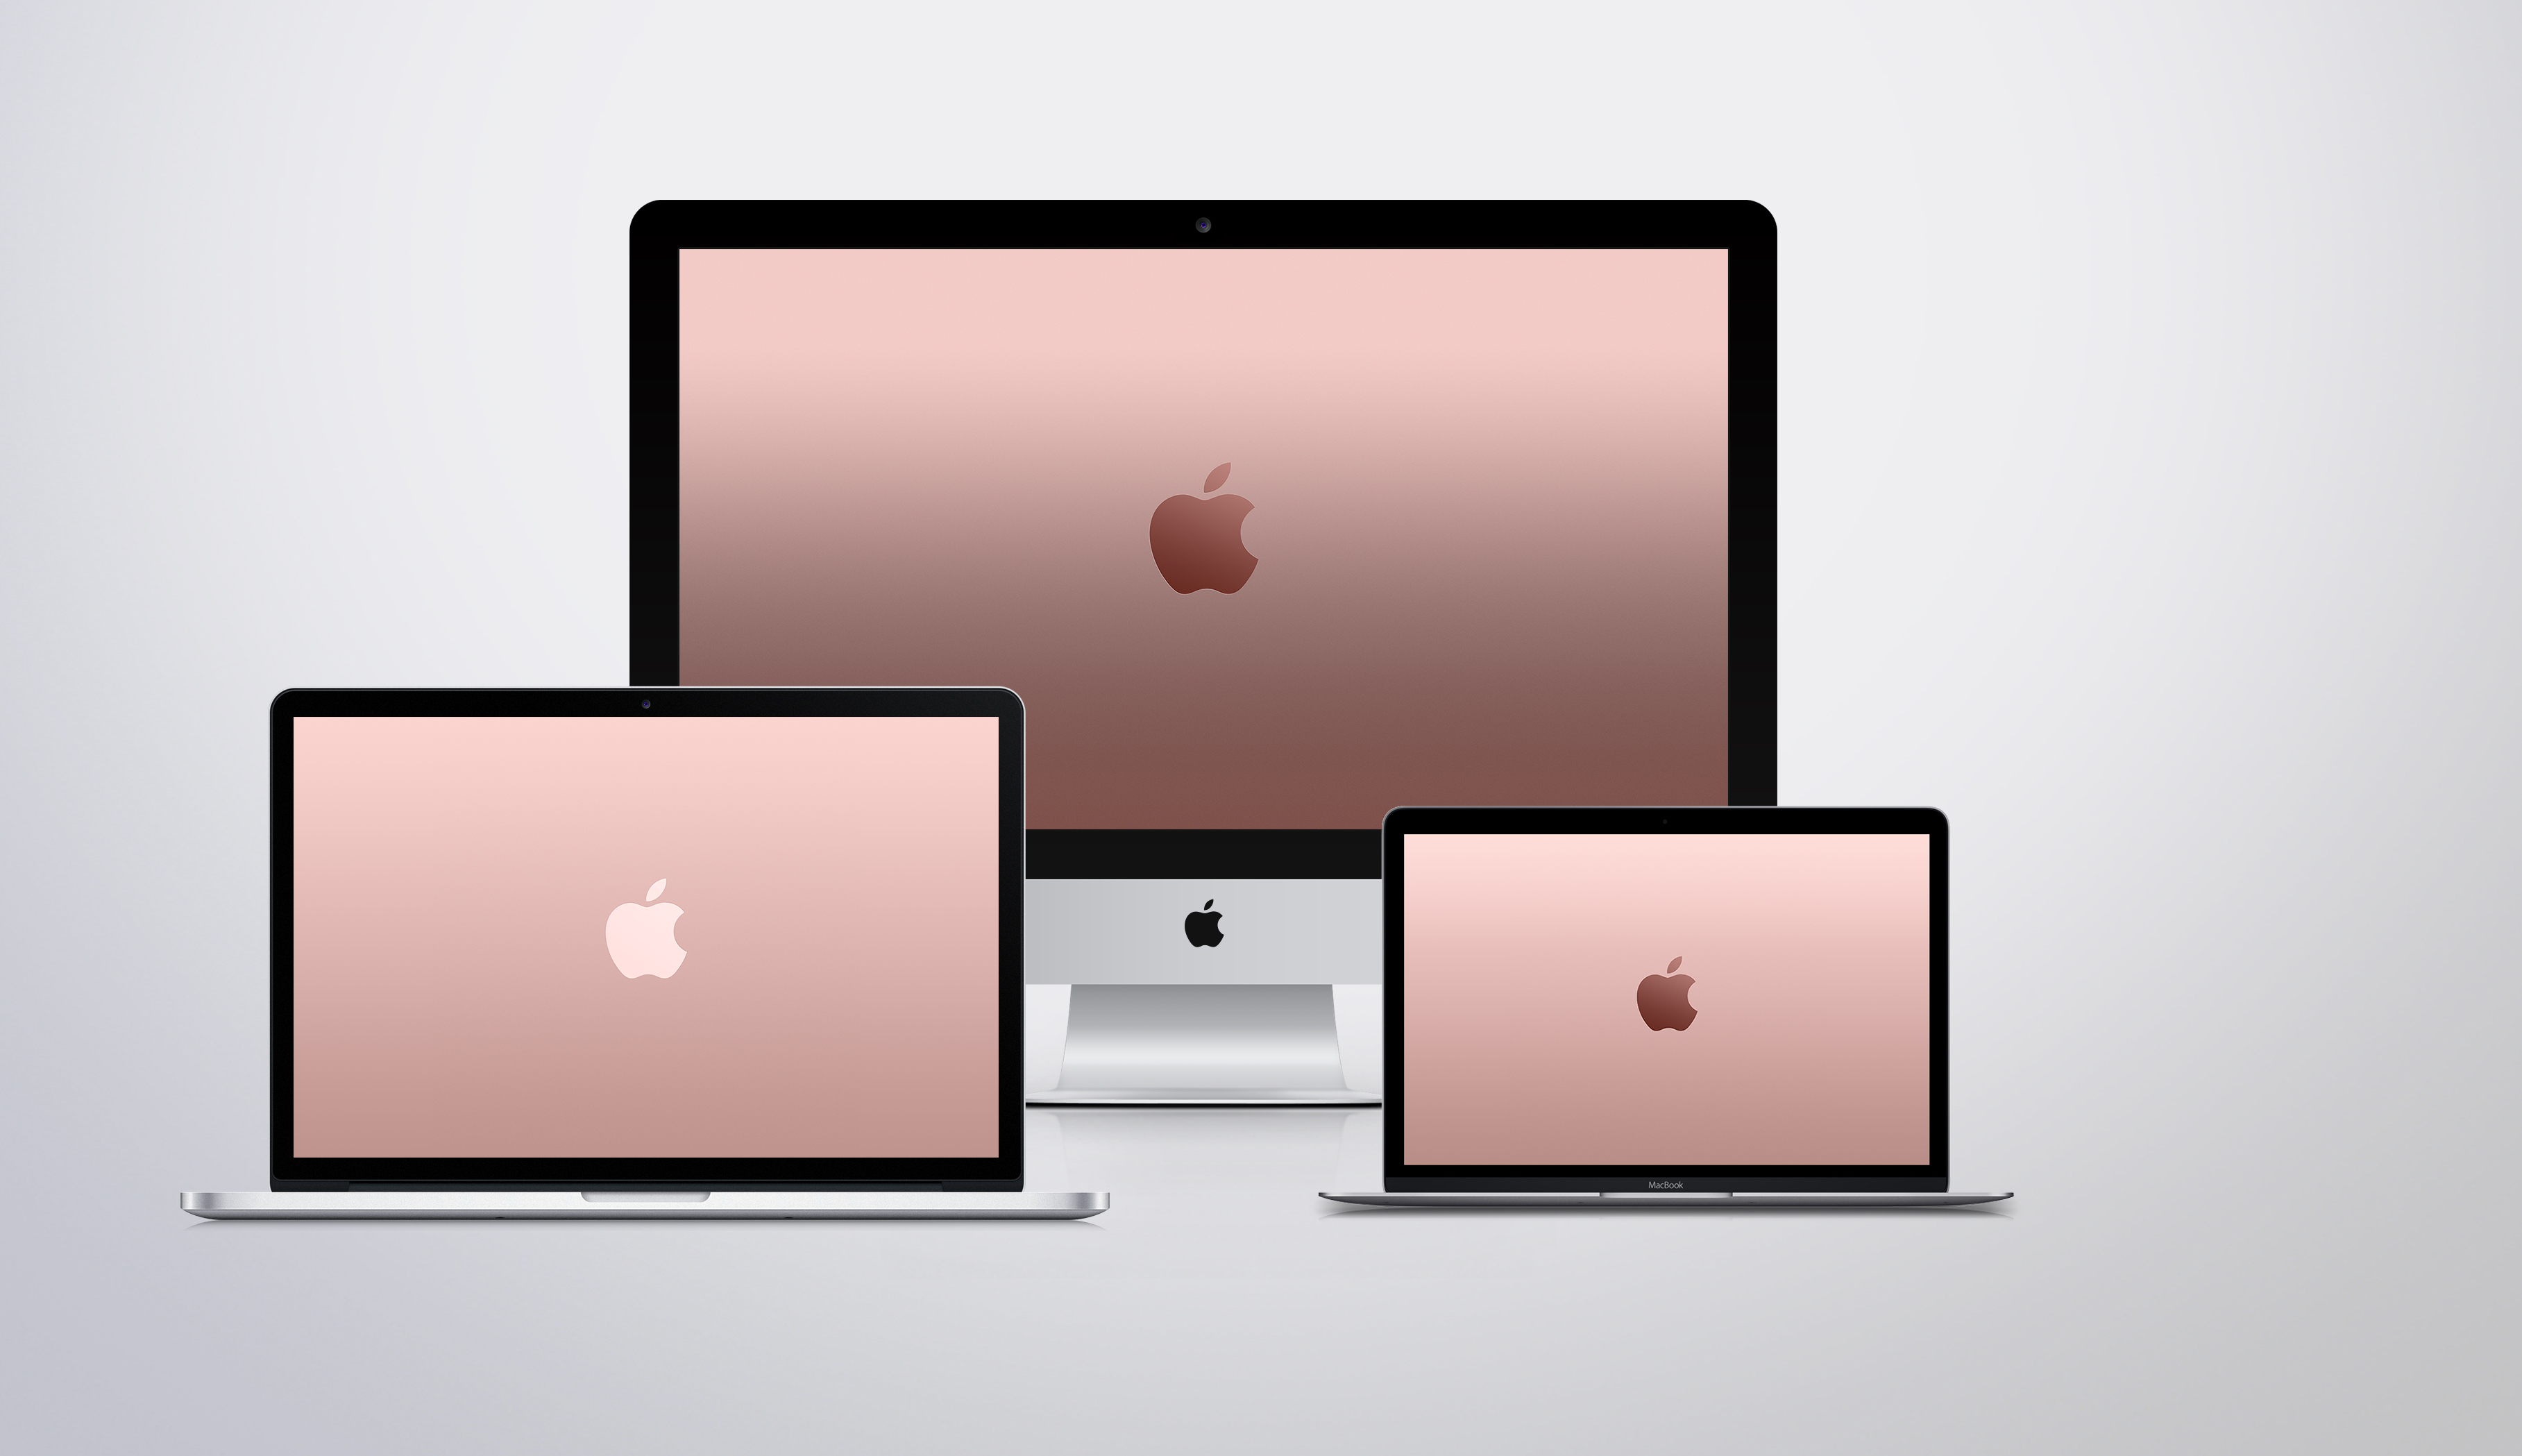 apple rose gold wallpapersjasonzigrino on deviantart